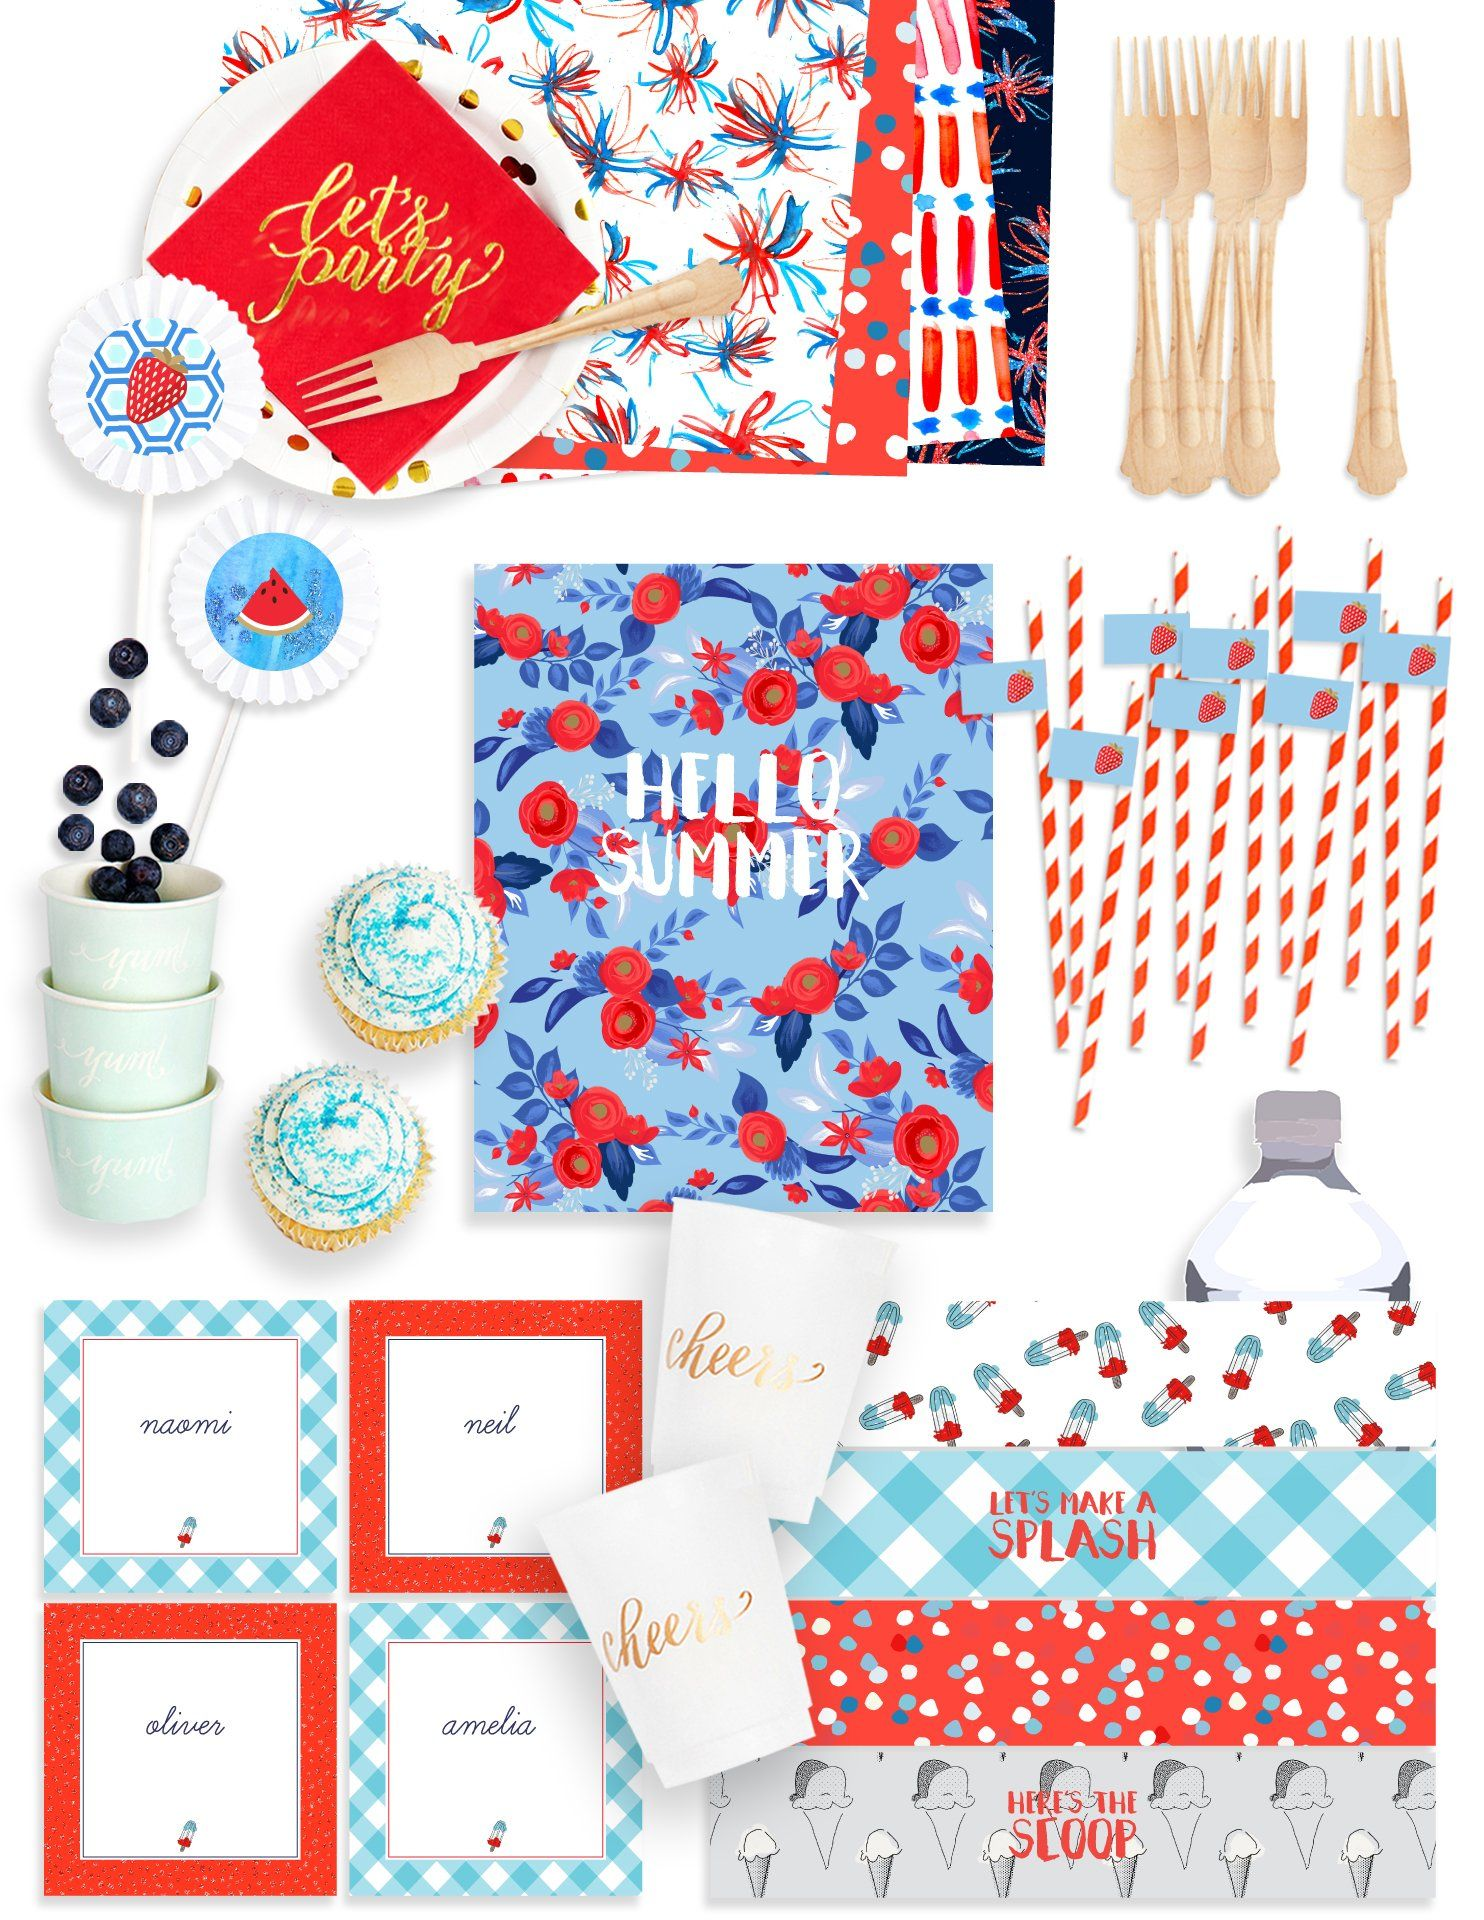 All The Summer Party Supplies And Summer Party Ideas You Need This Summer Party In A B Summer Party Supplies Summer Party Inspiration Summer Party Invitations